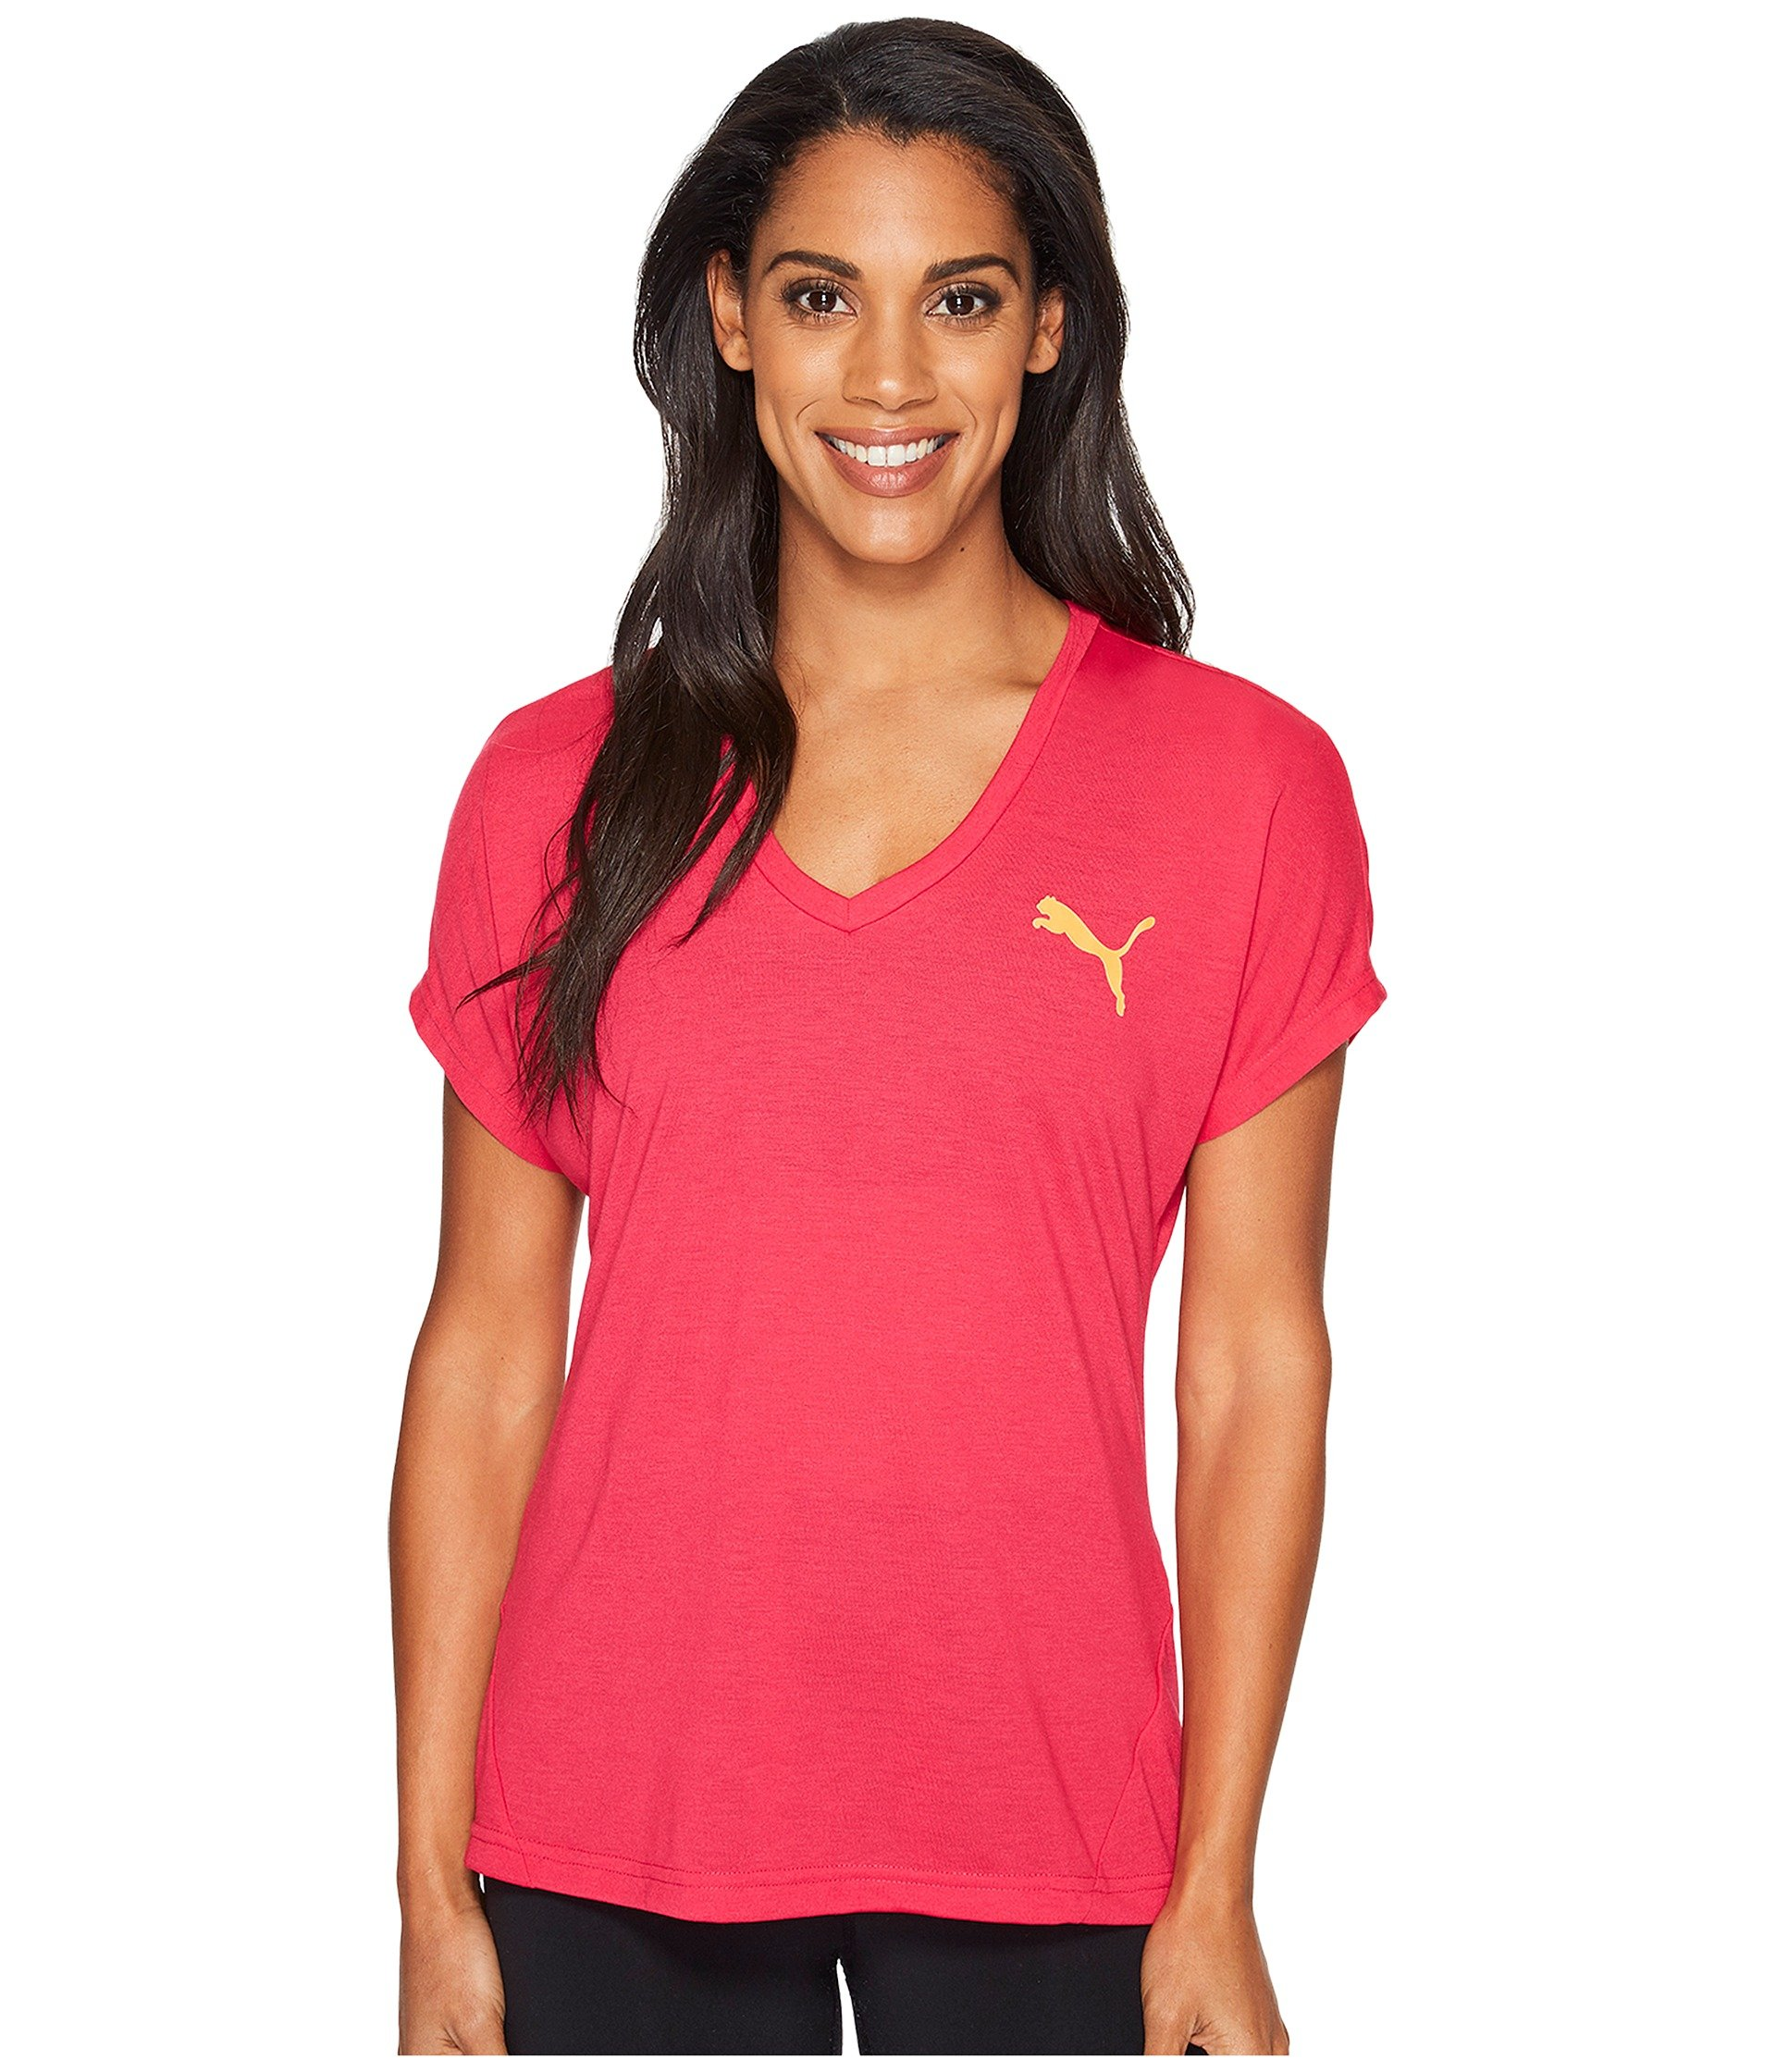 6addf1eea93 Puma Elevated Sporty Tee In Bright Rose